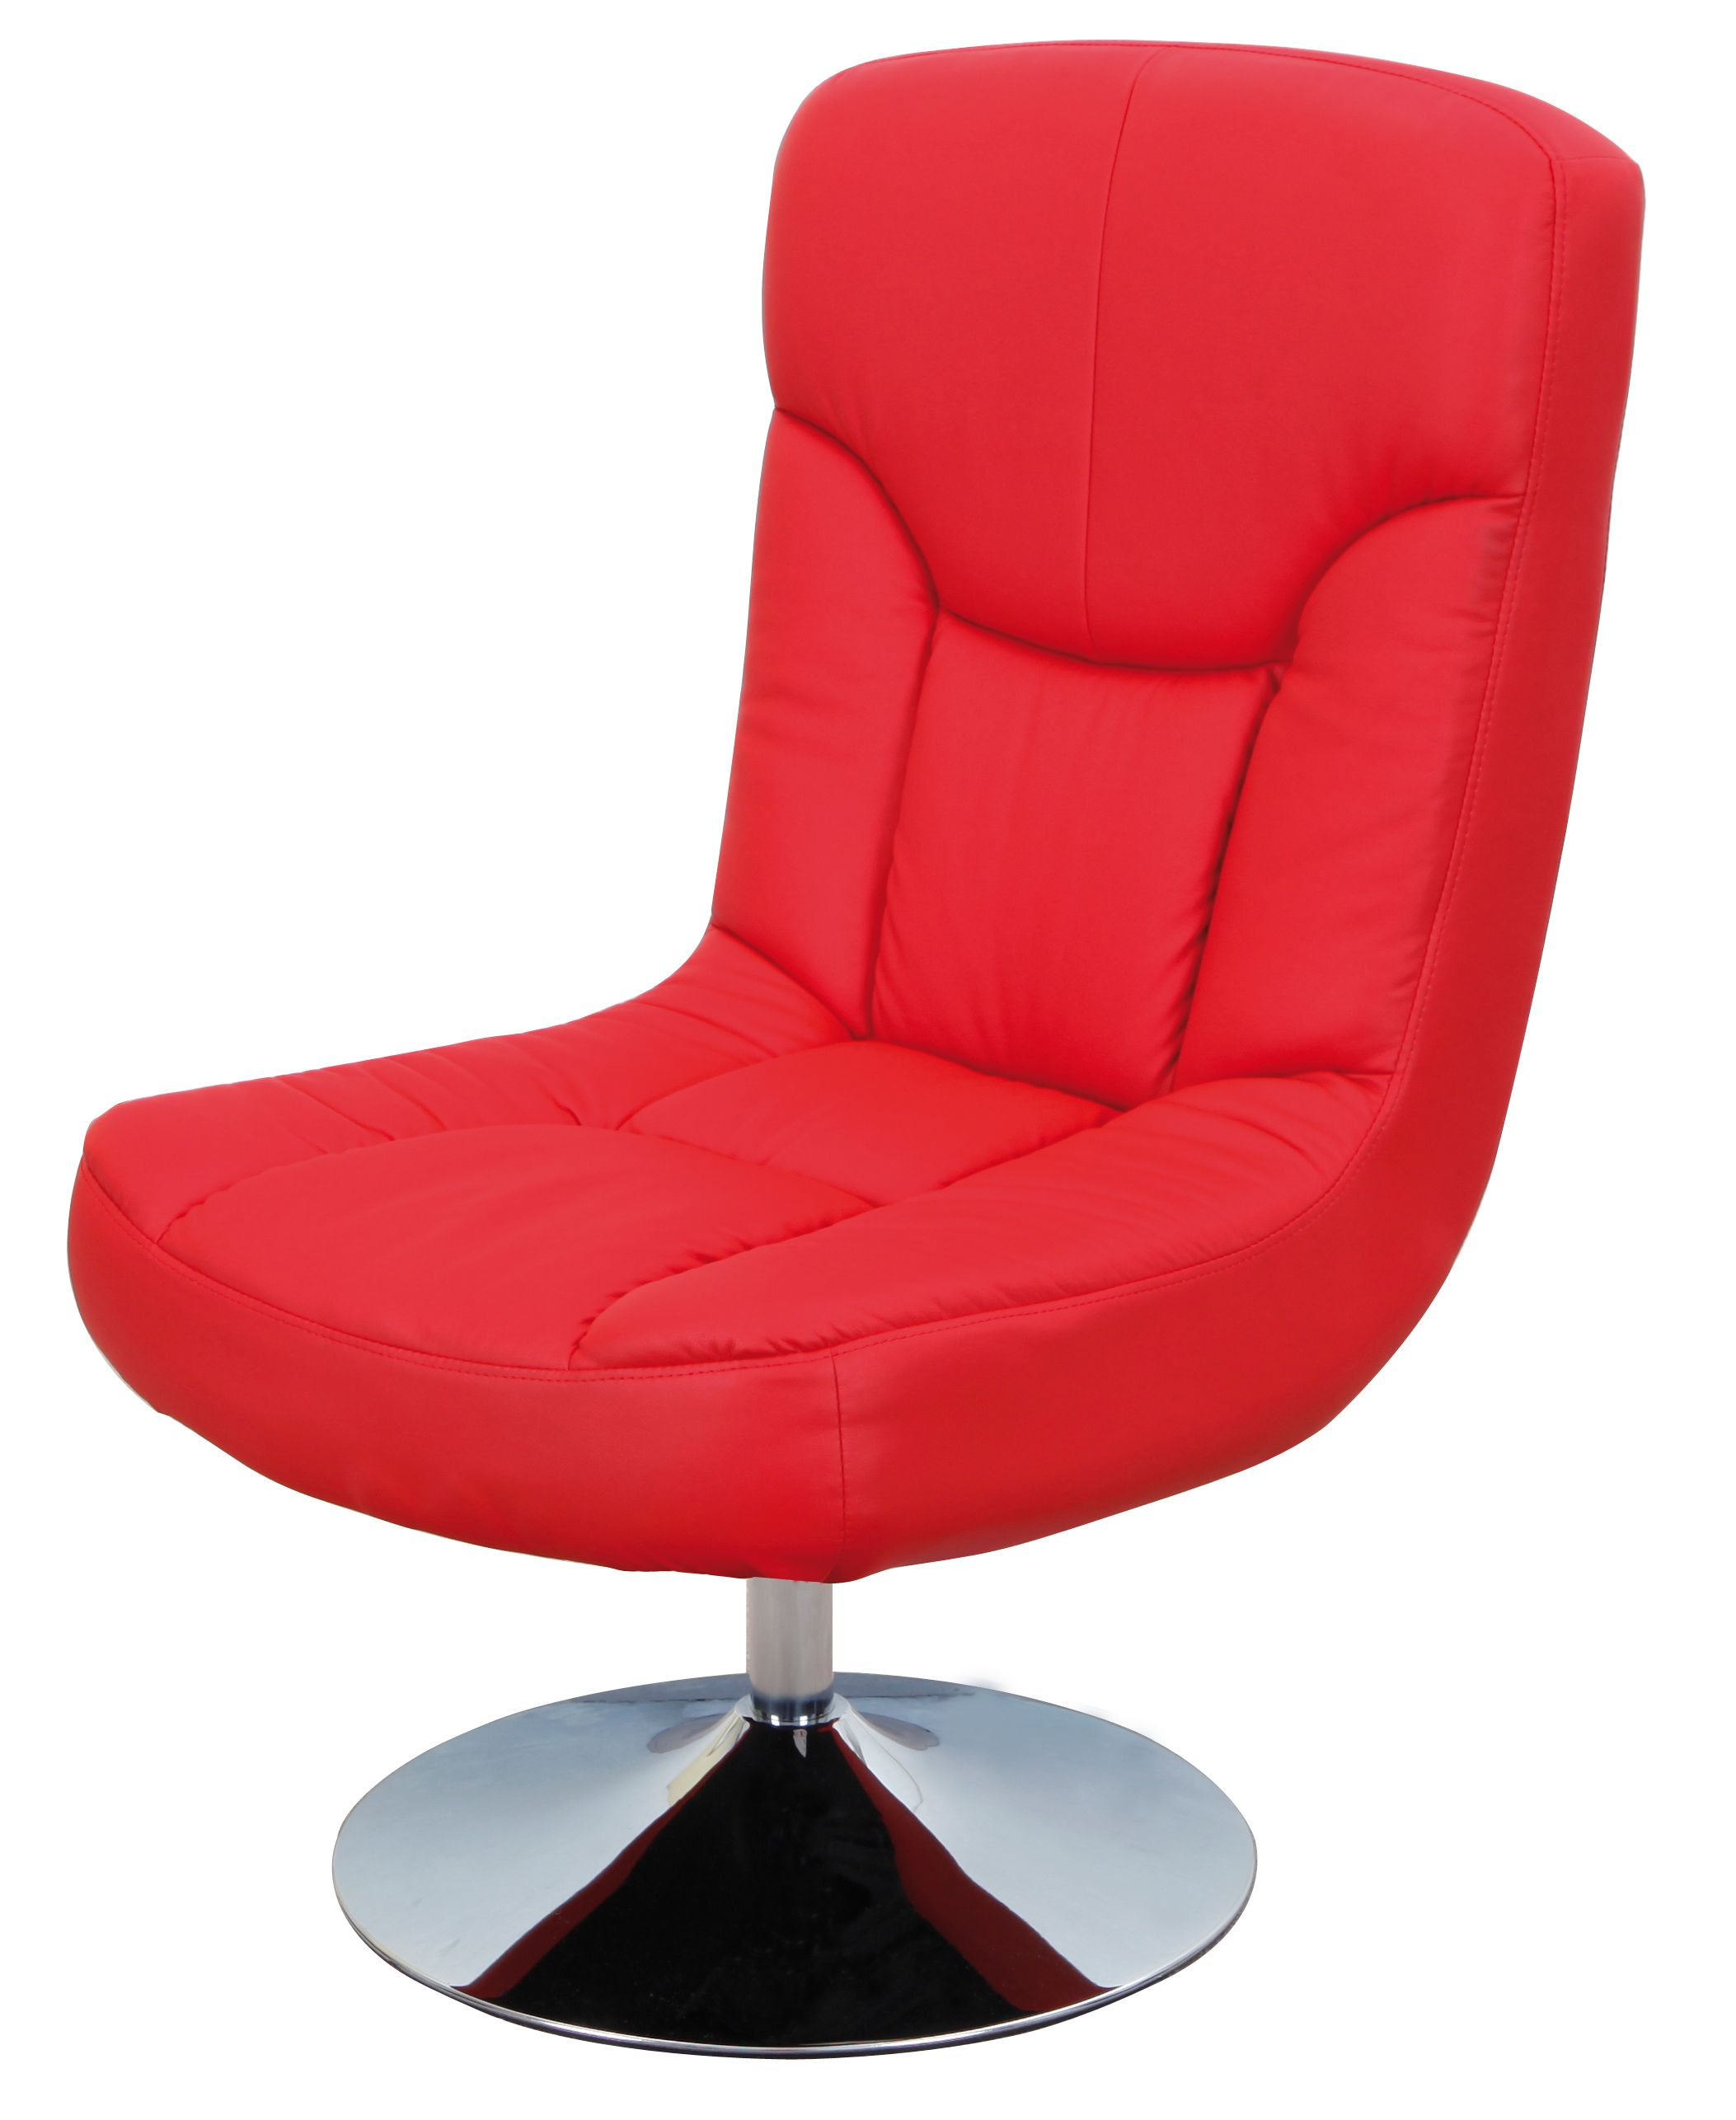 Funky chairs at